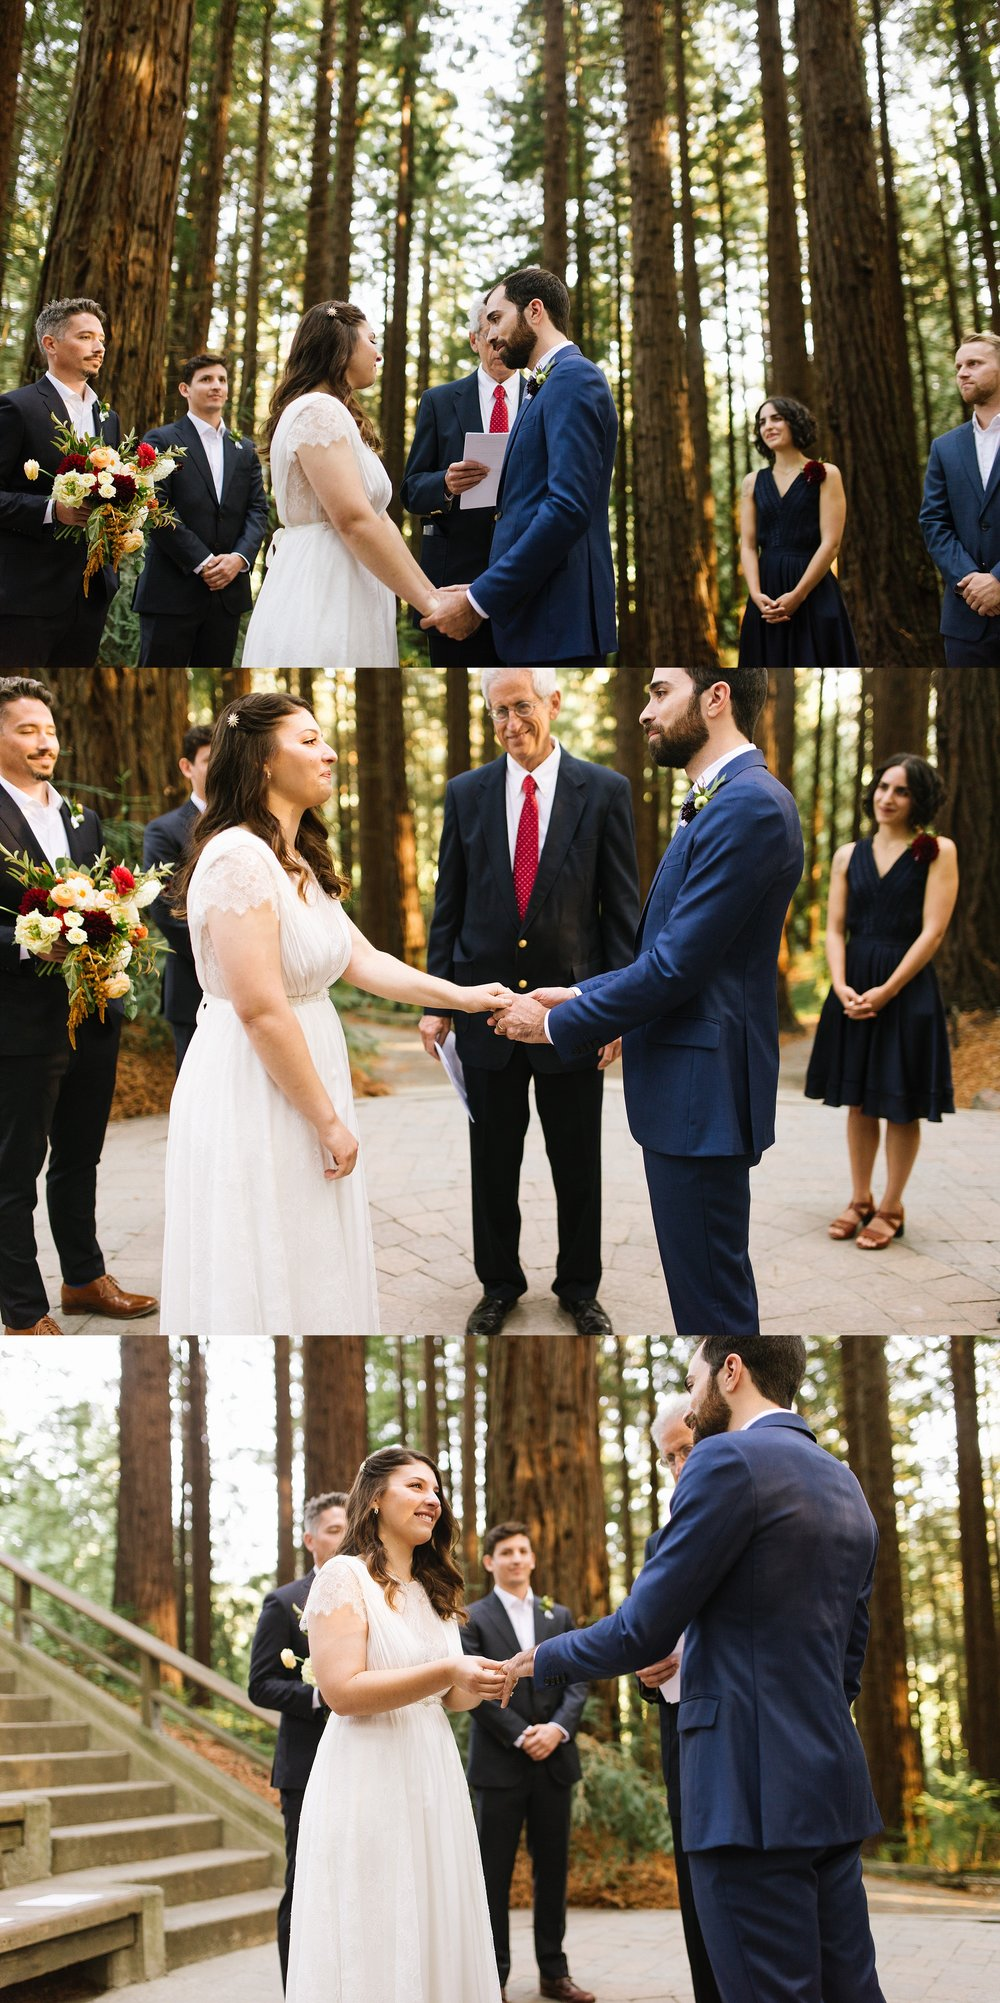 noahhannah_redwoods_botanical_wedding_berkeley_cdp_0033.jpg